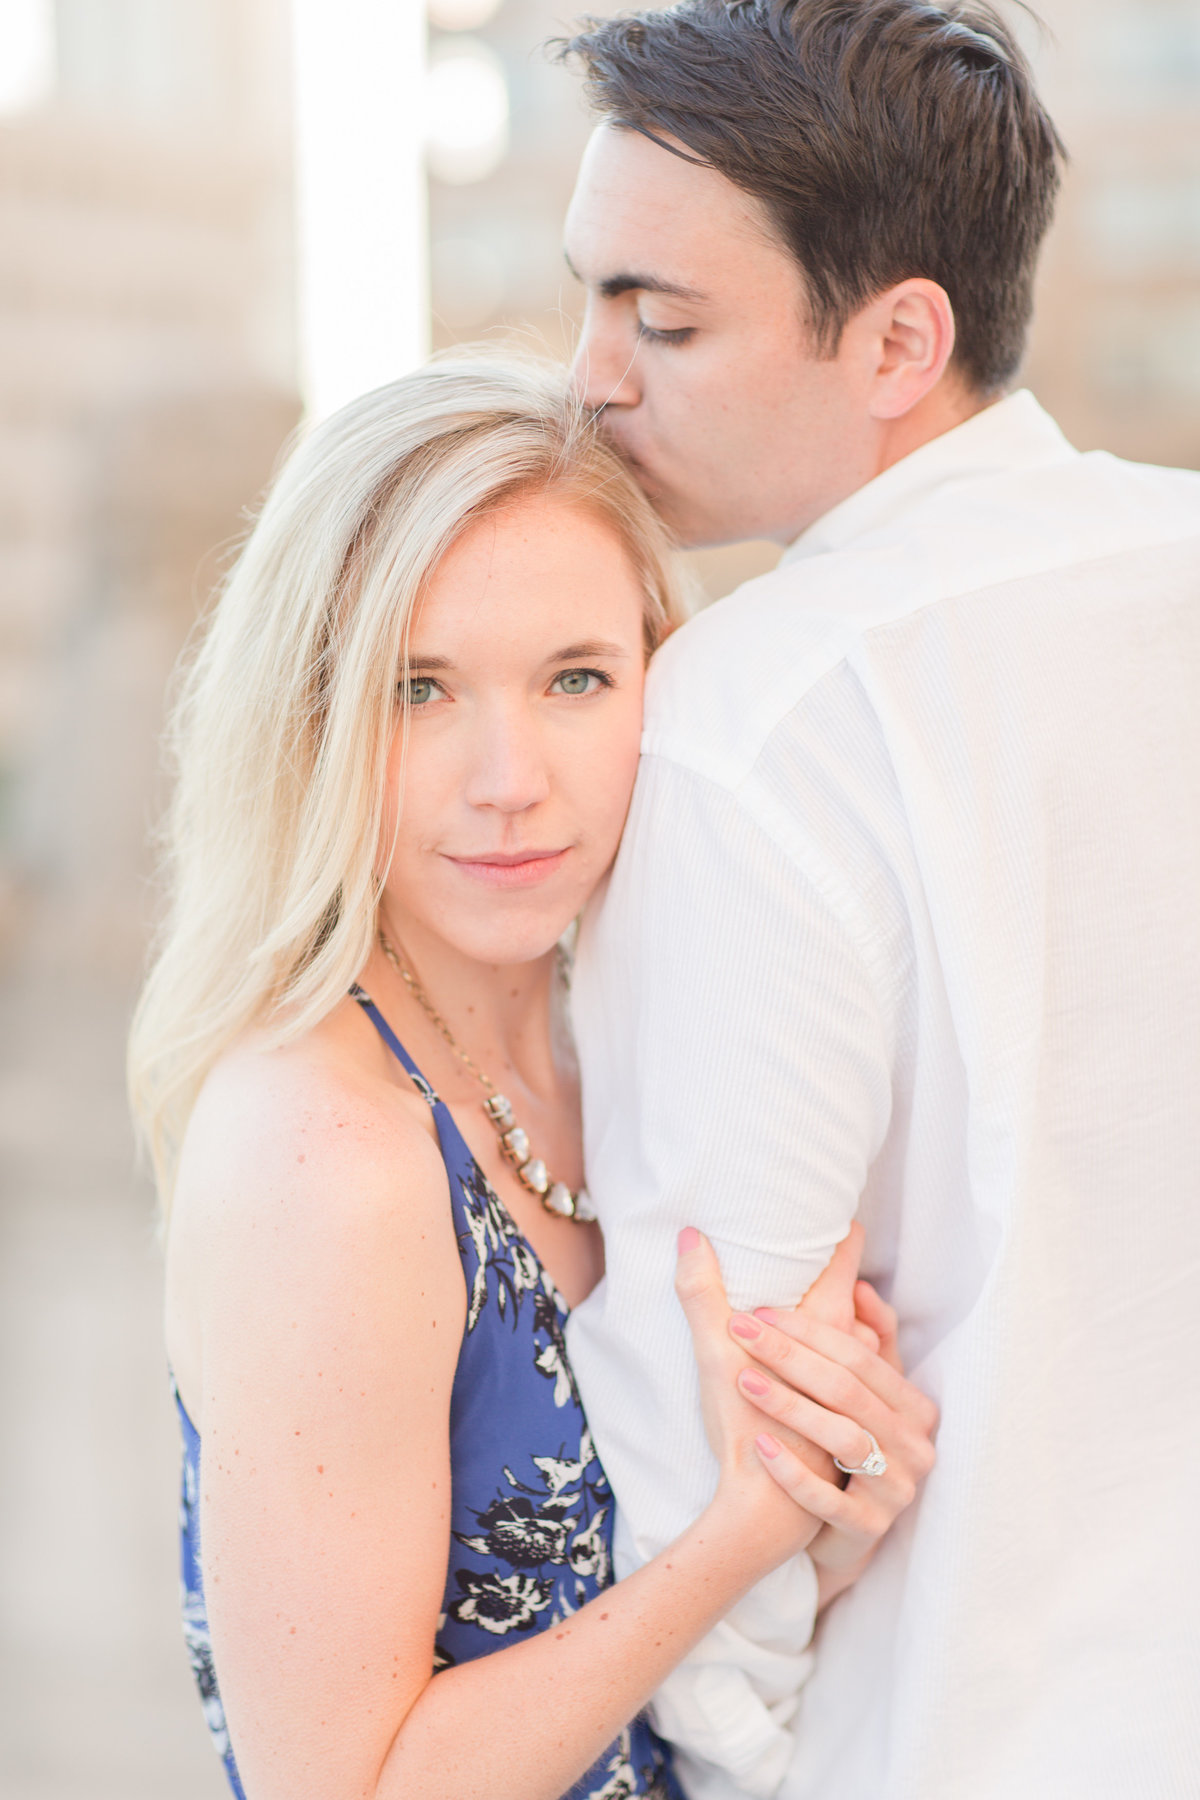 Indianapolis War Memorial Downtown Engagement Session Sunrise Sami Renee Photography-28